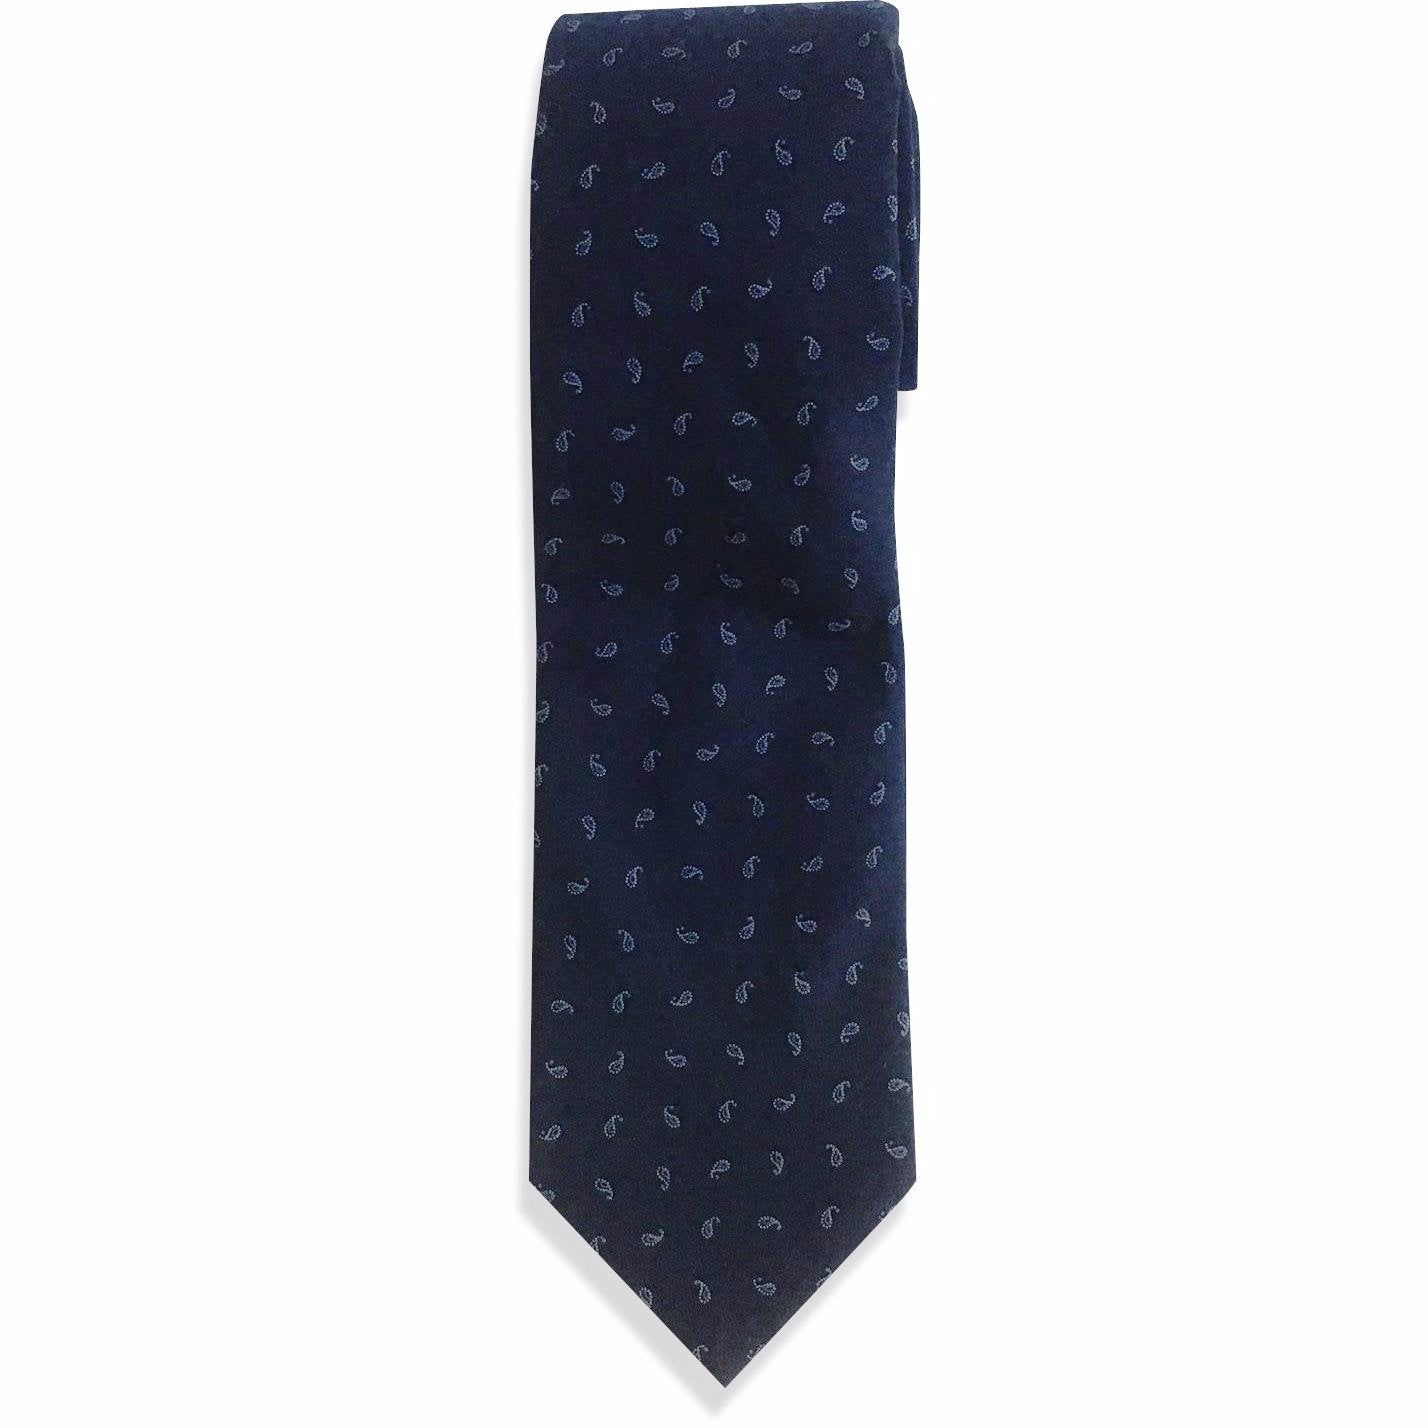 The Blue Paisley Tie